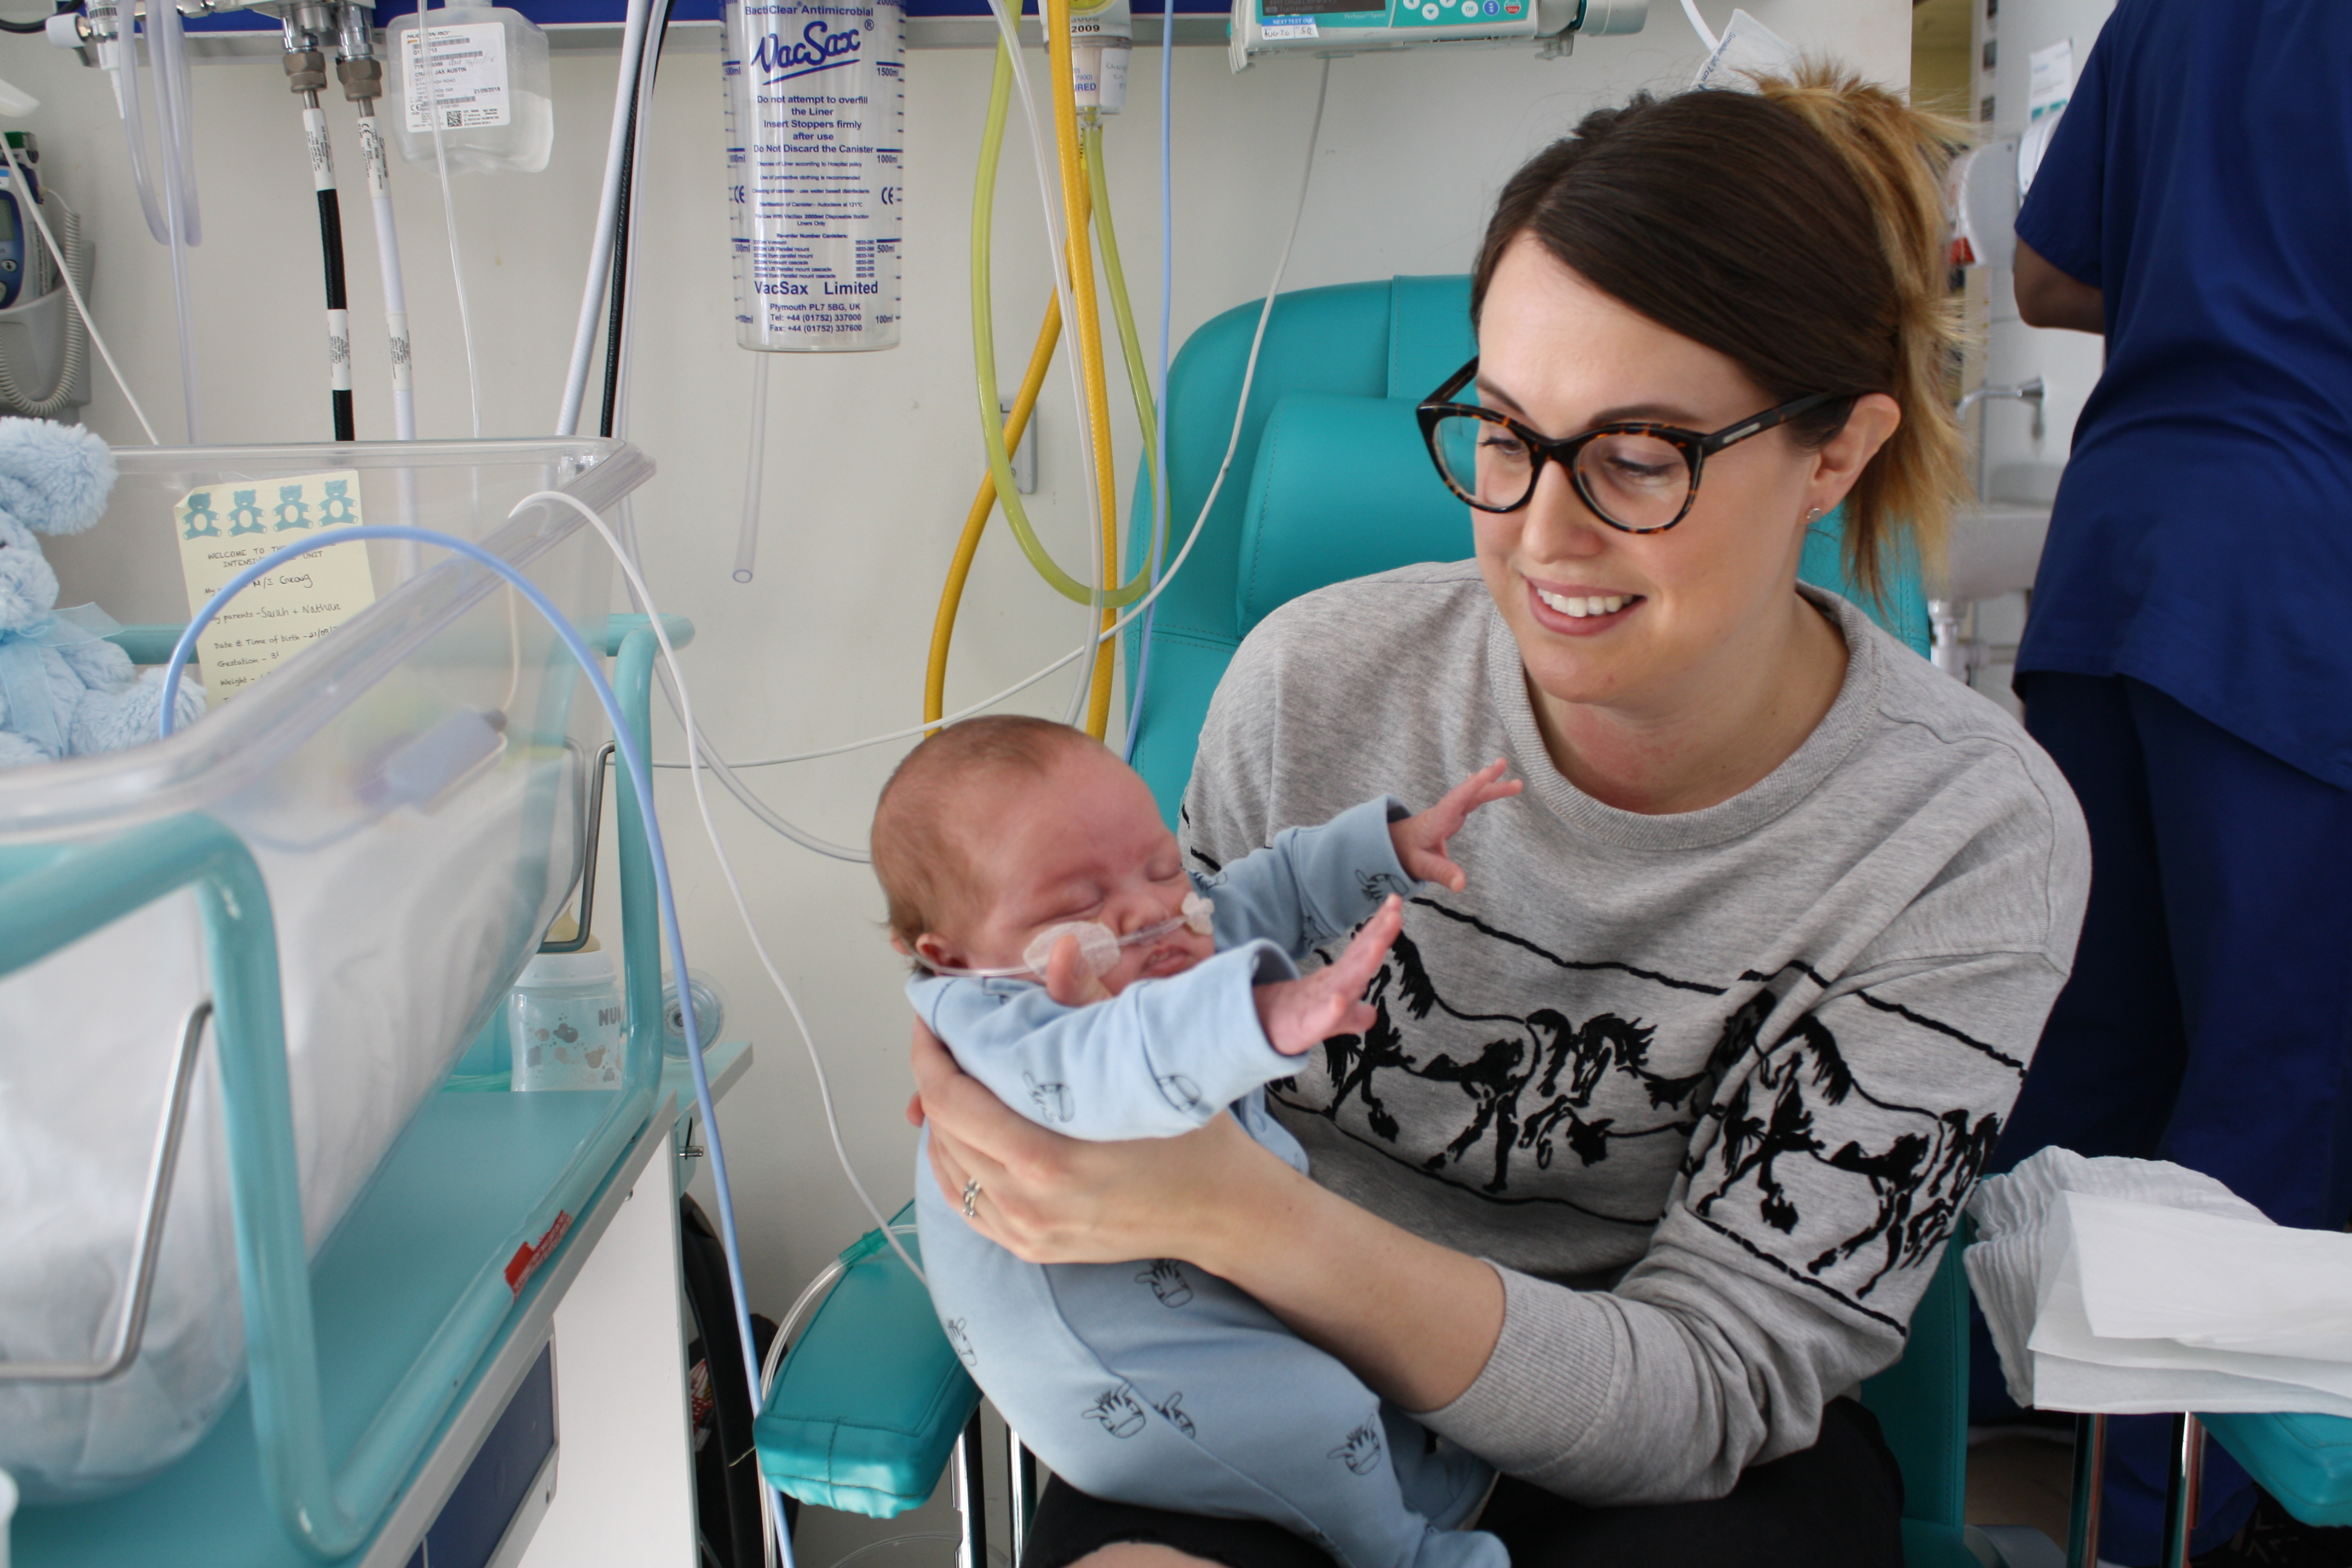 Sarah Craig from Waterlooville was 21 weeks pregnant when her waters suddenly broke